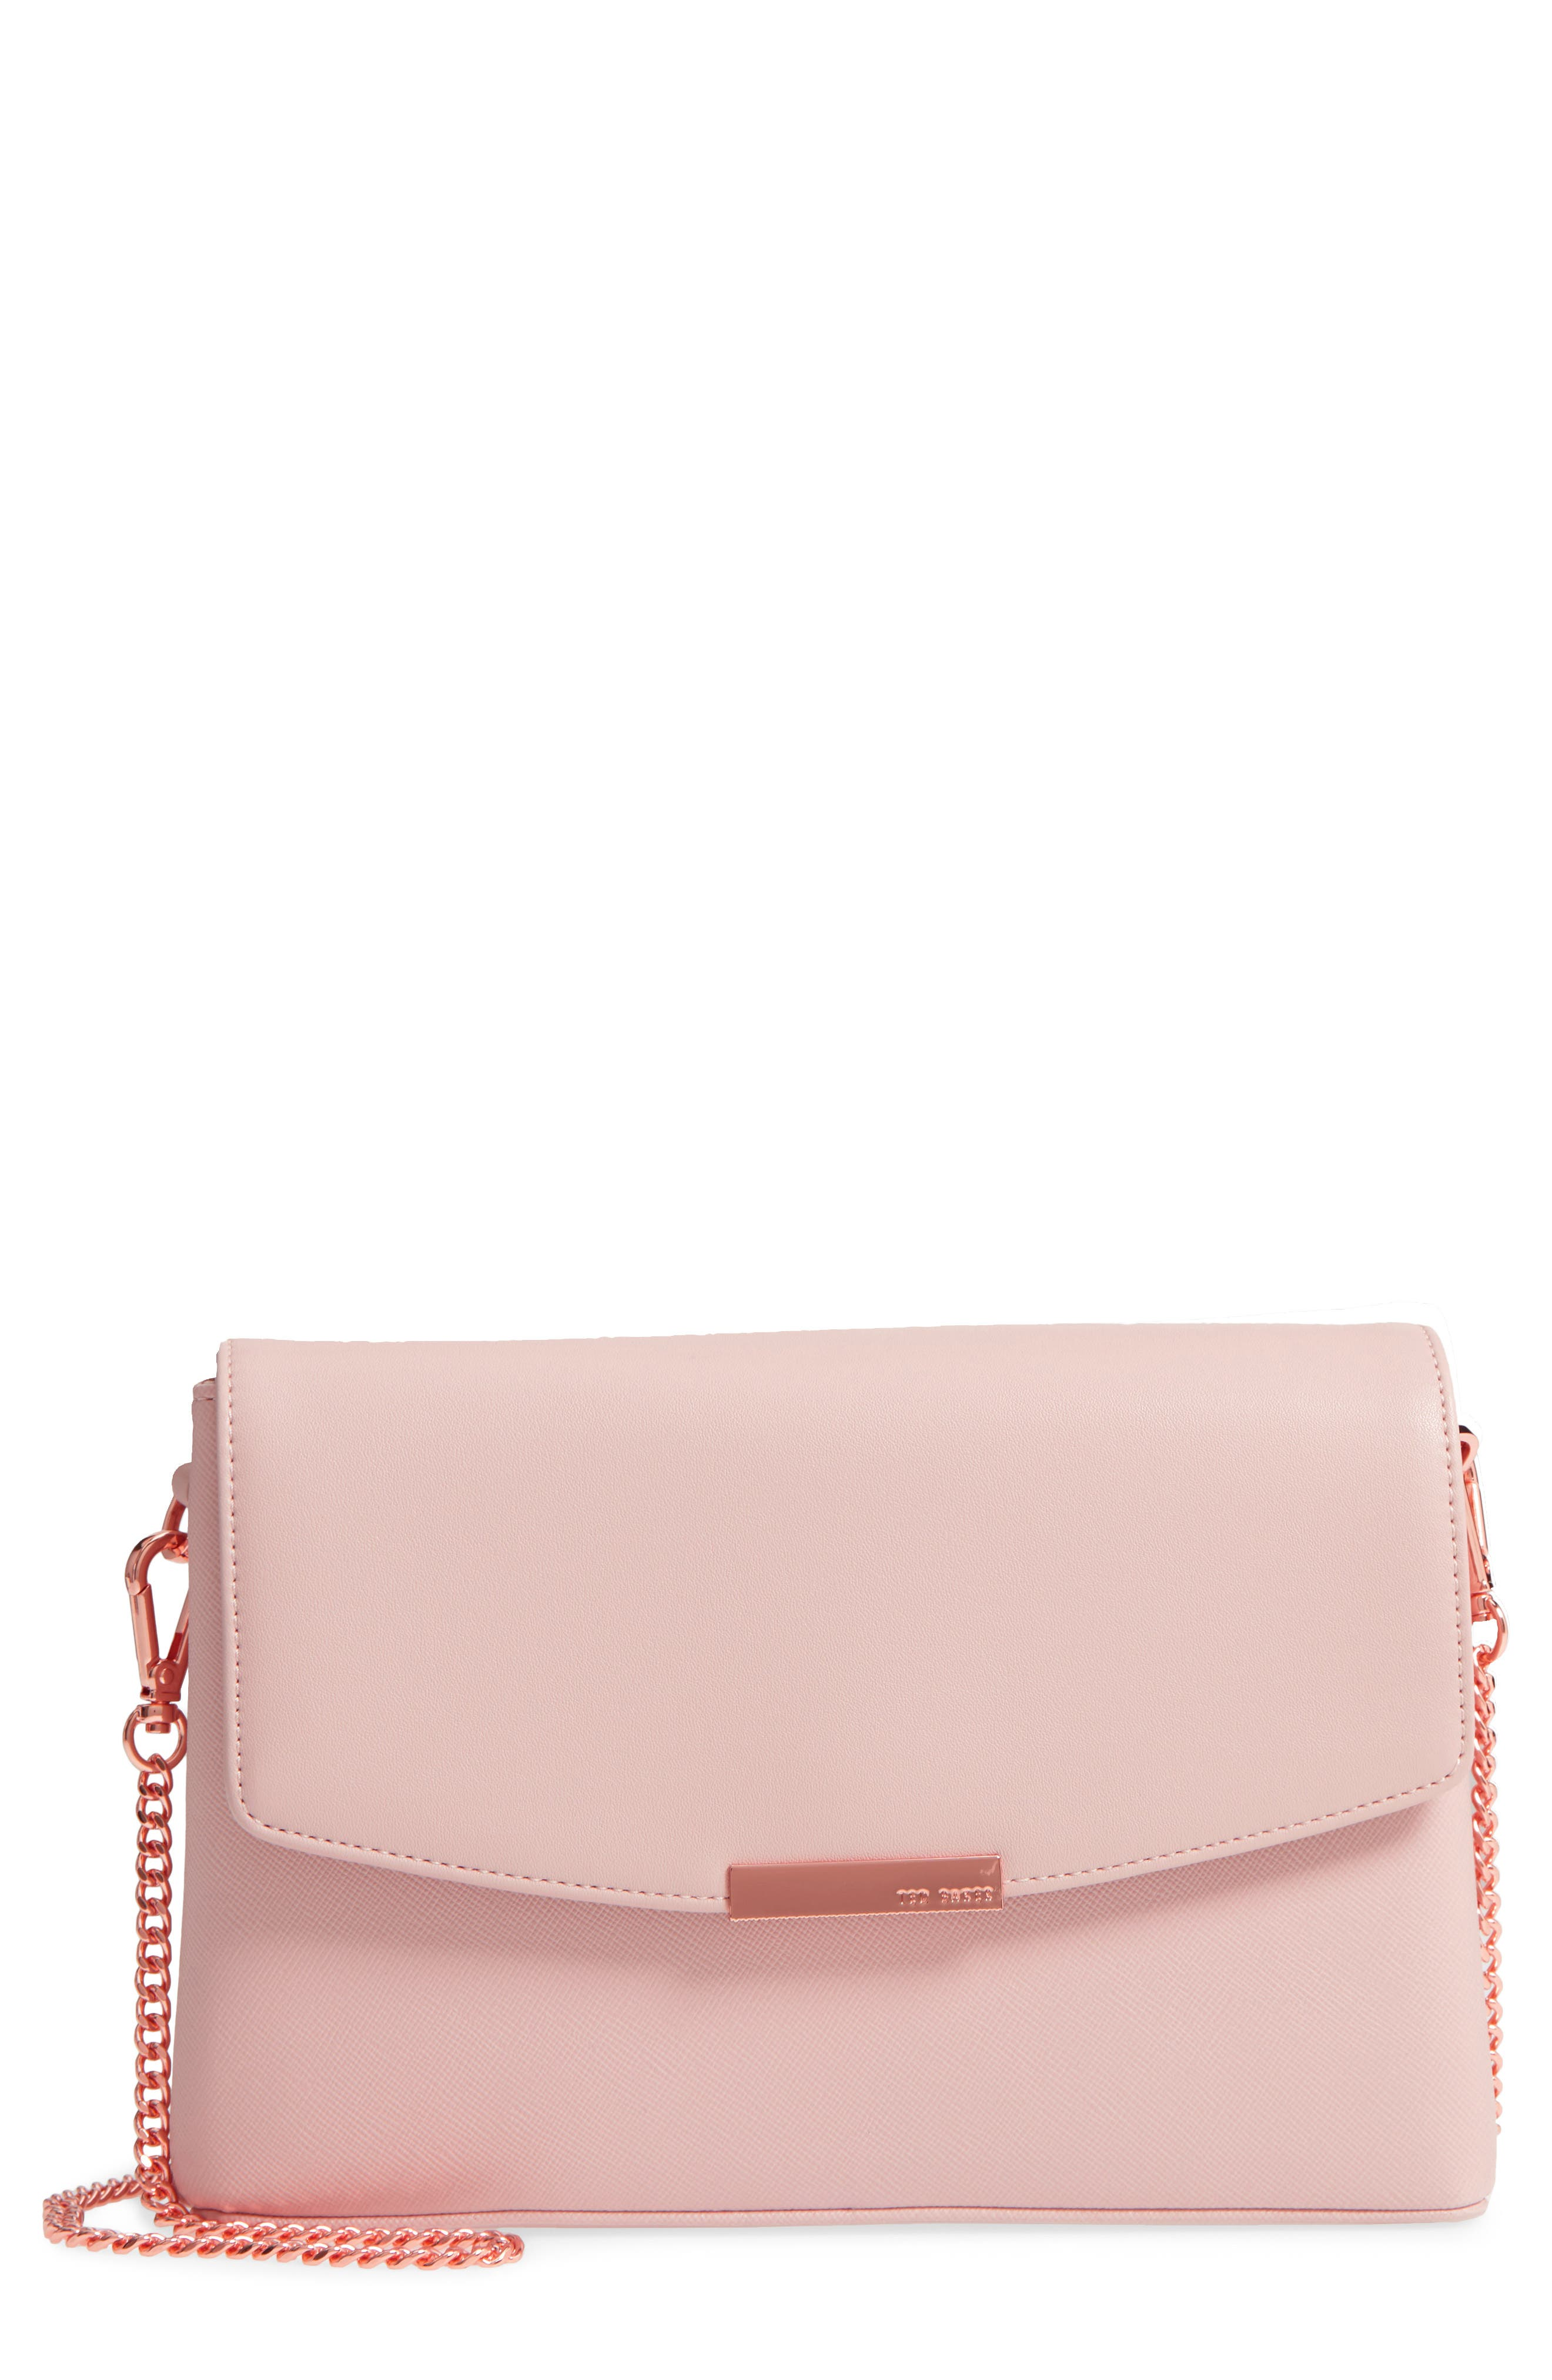 Faux Leather Crossbody Bag,                             Main thumbnail 1, color,                             Nude Pink